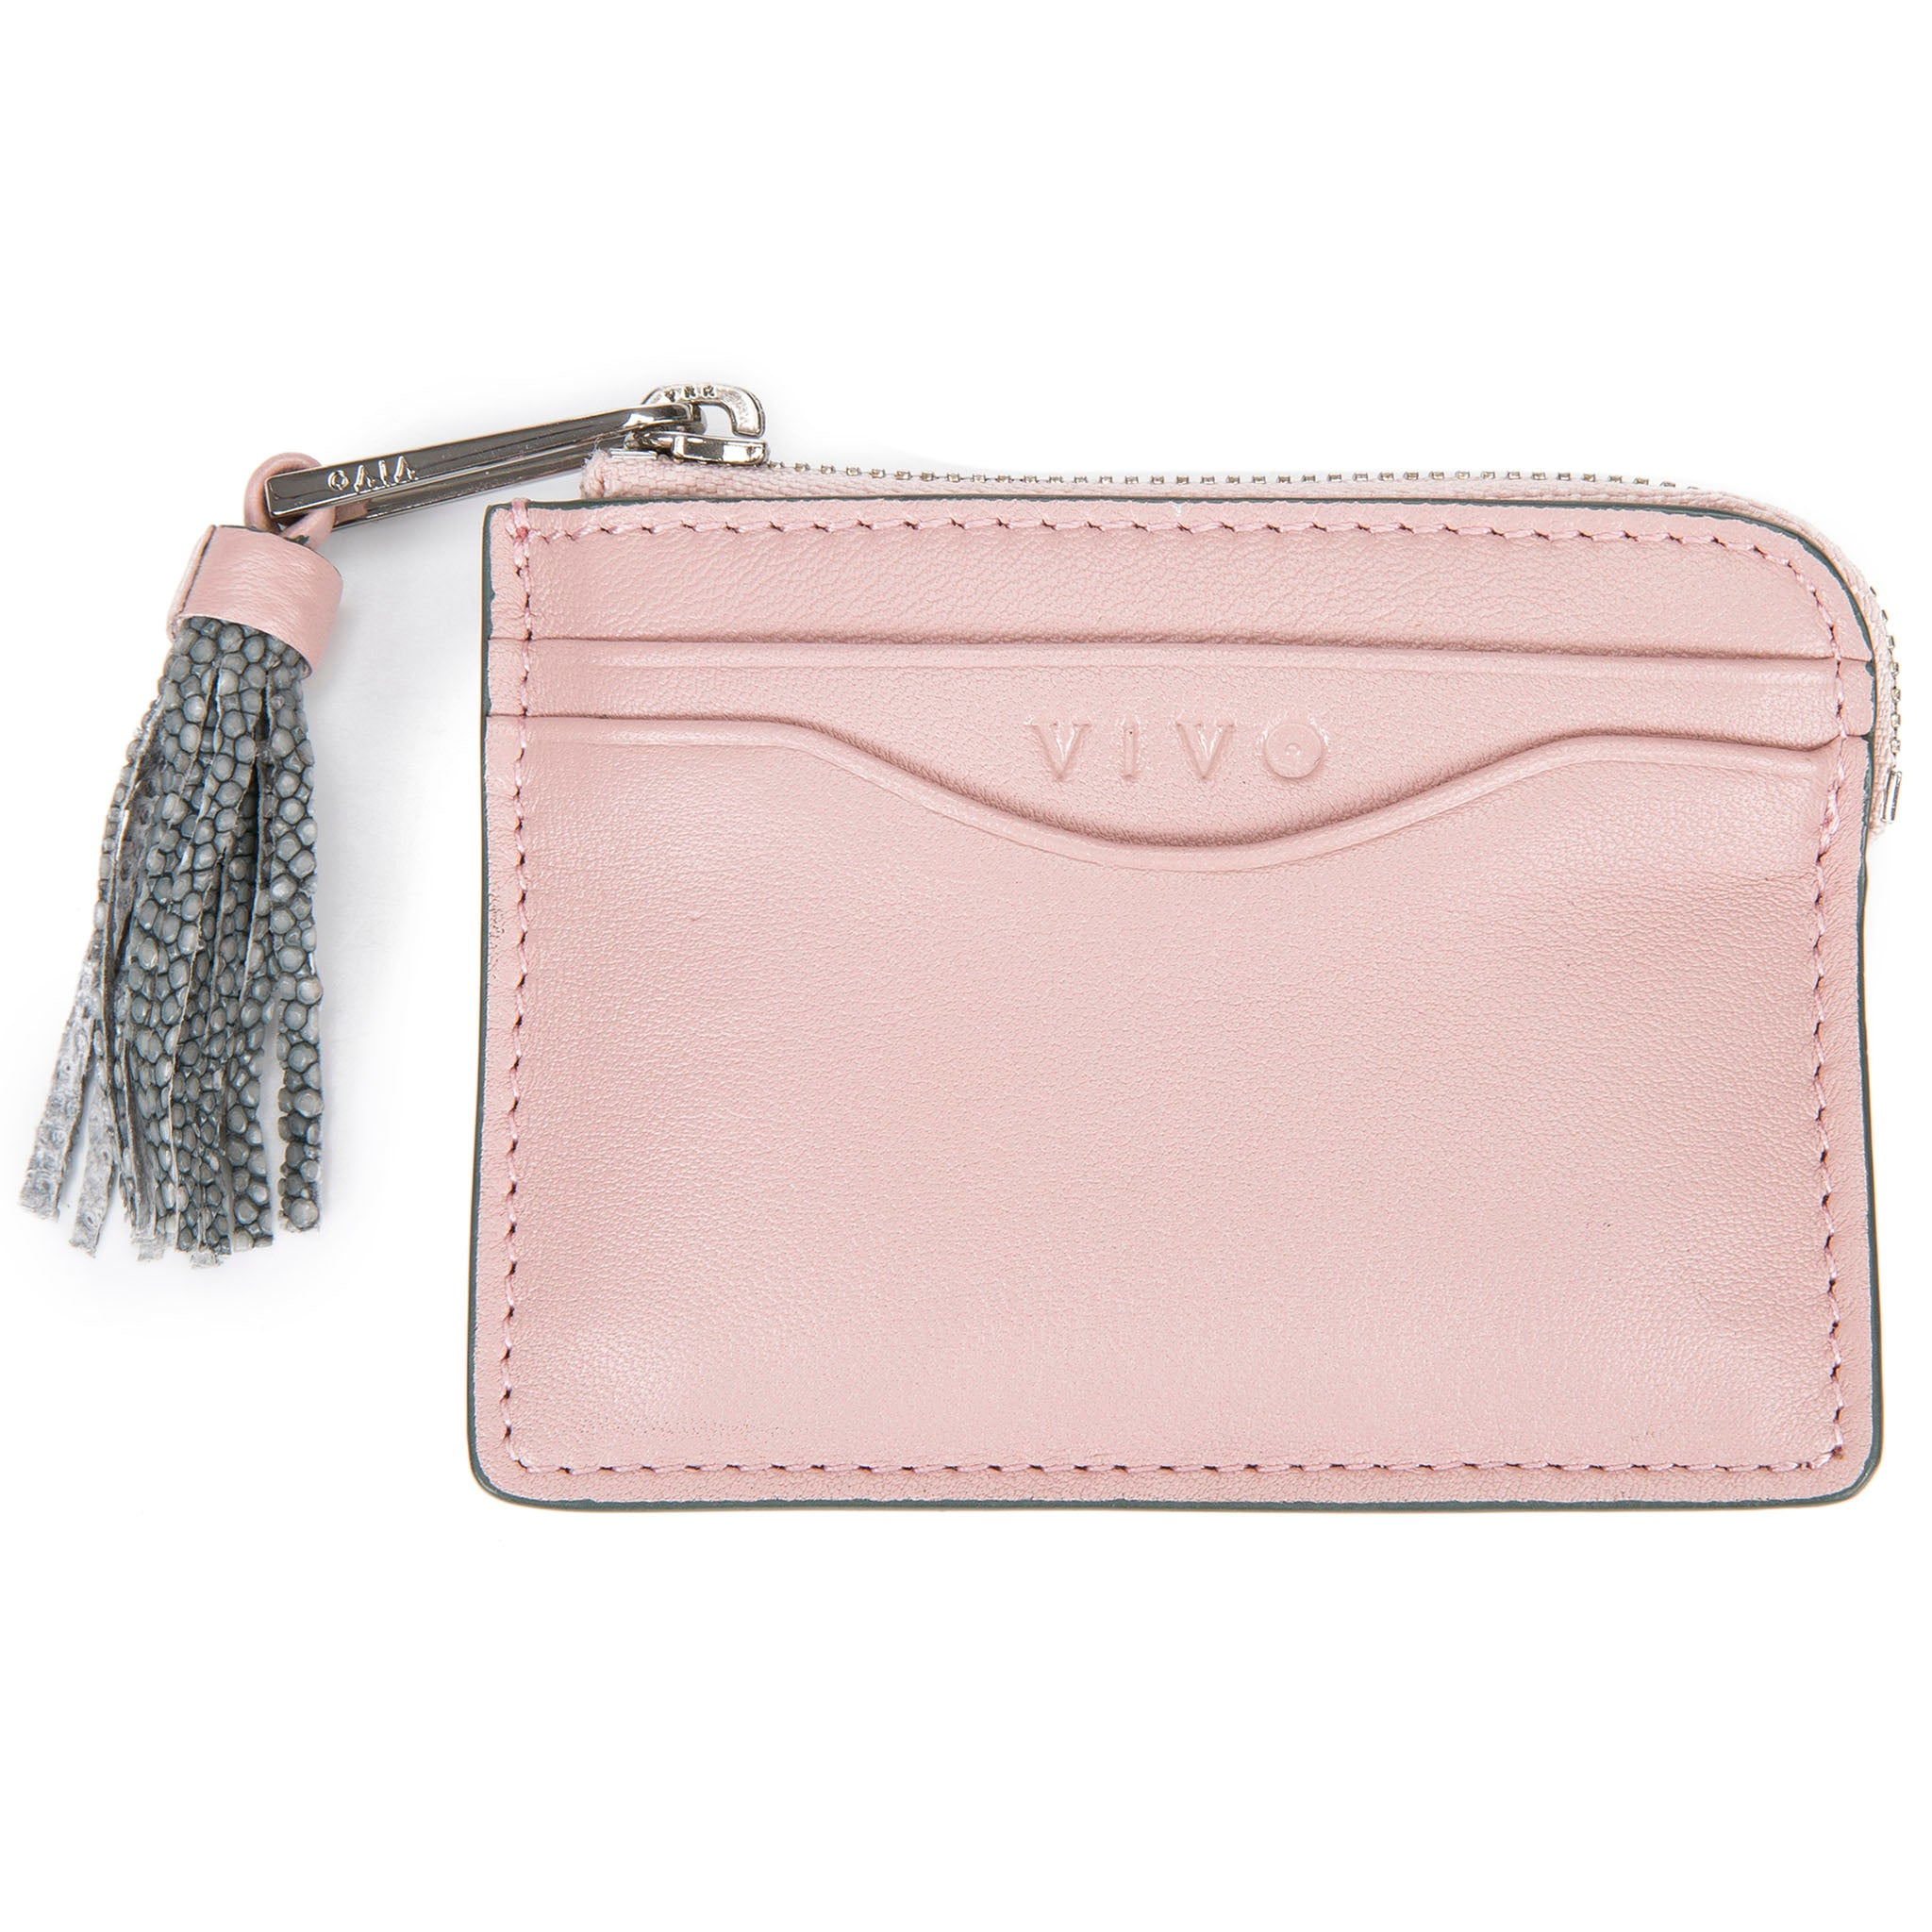 Pink Leather Zipper Card Or Coin Case With Shagreen Tassel Pull Front View Avery - Vivo Direct